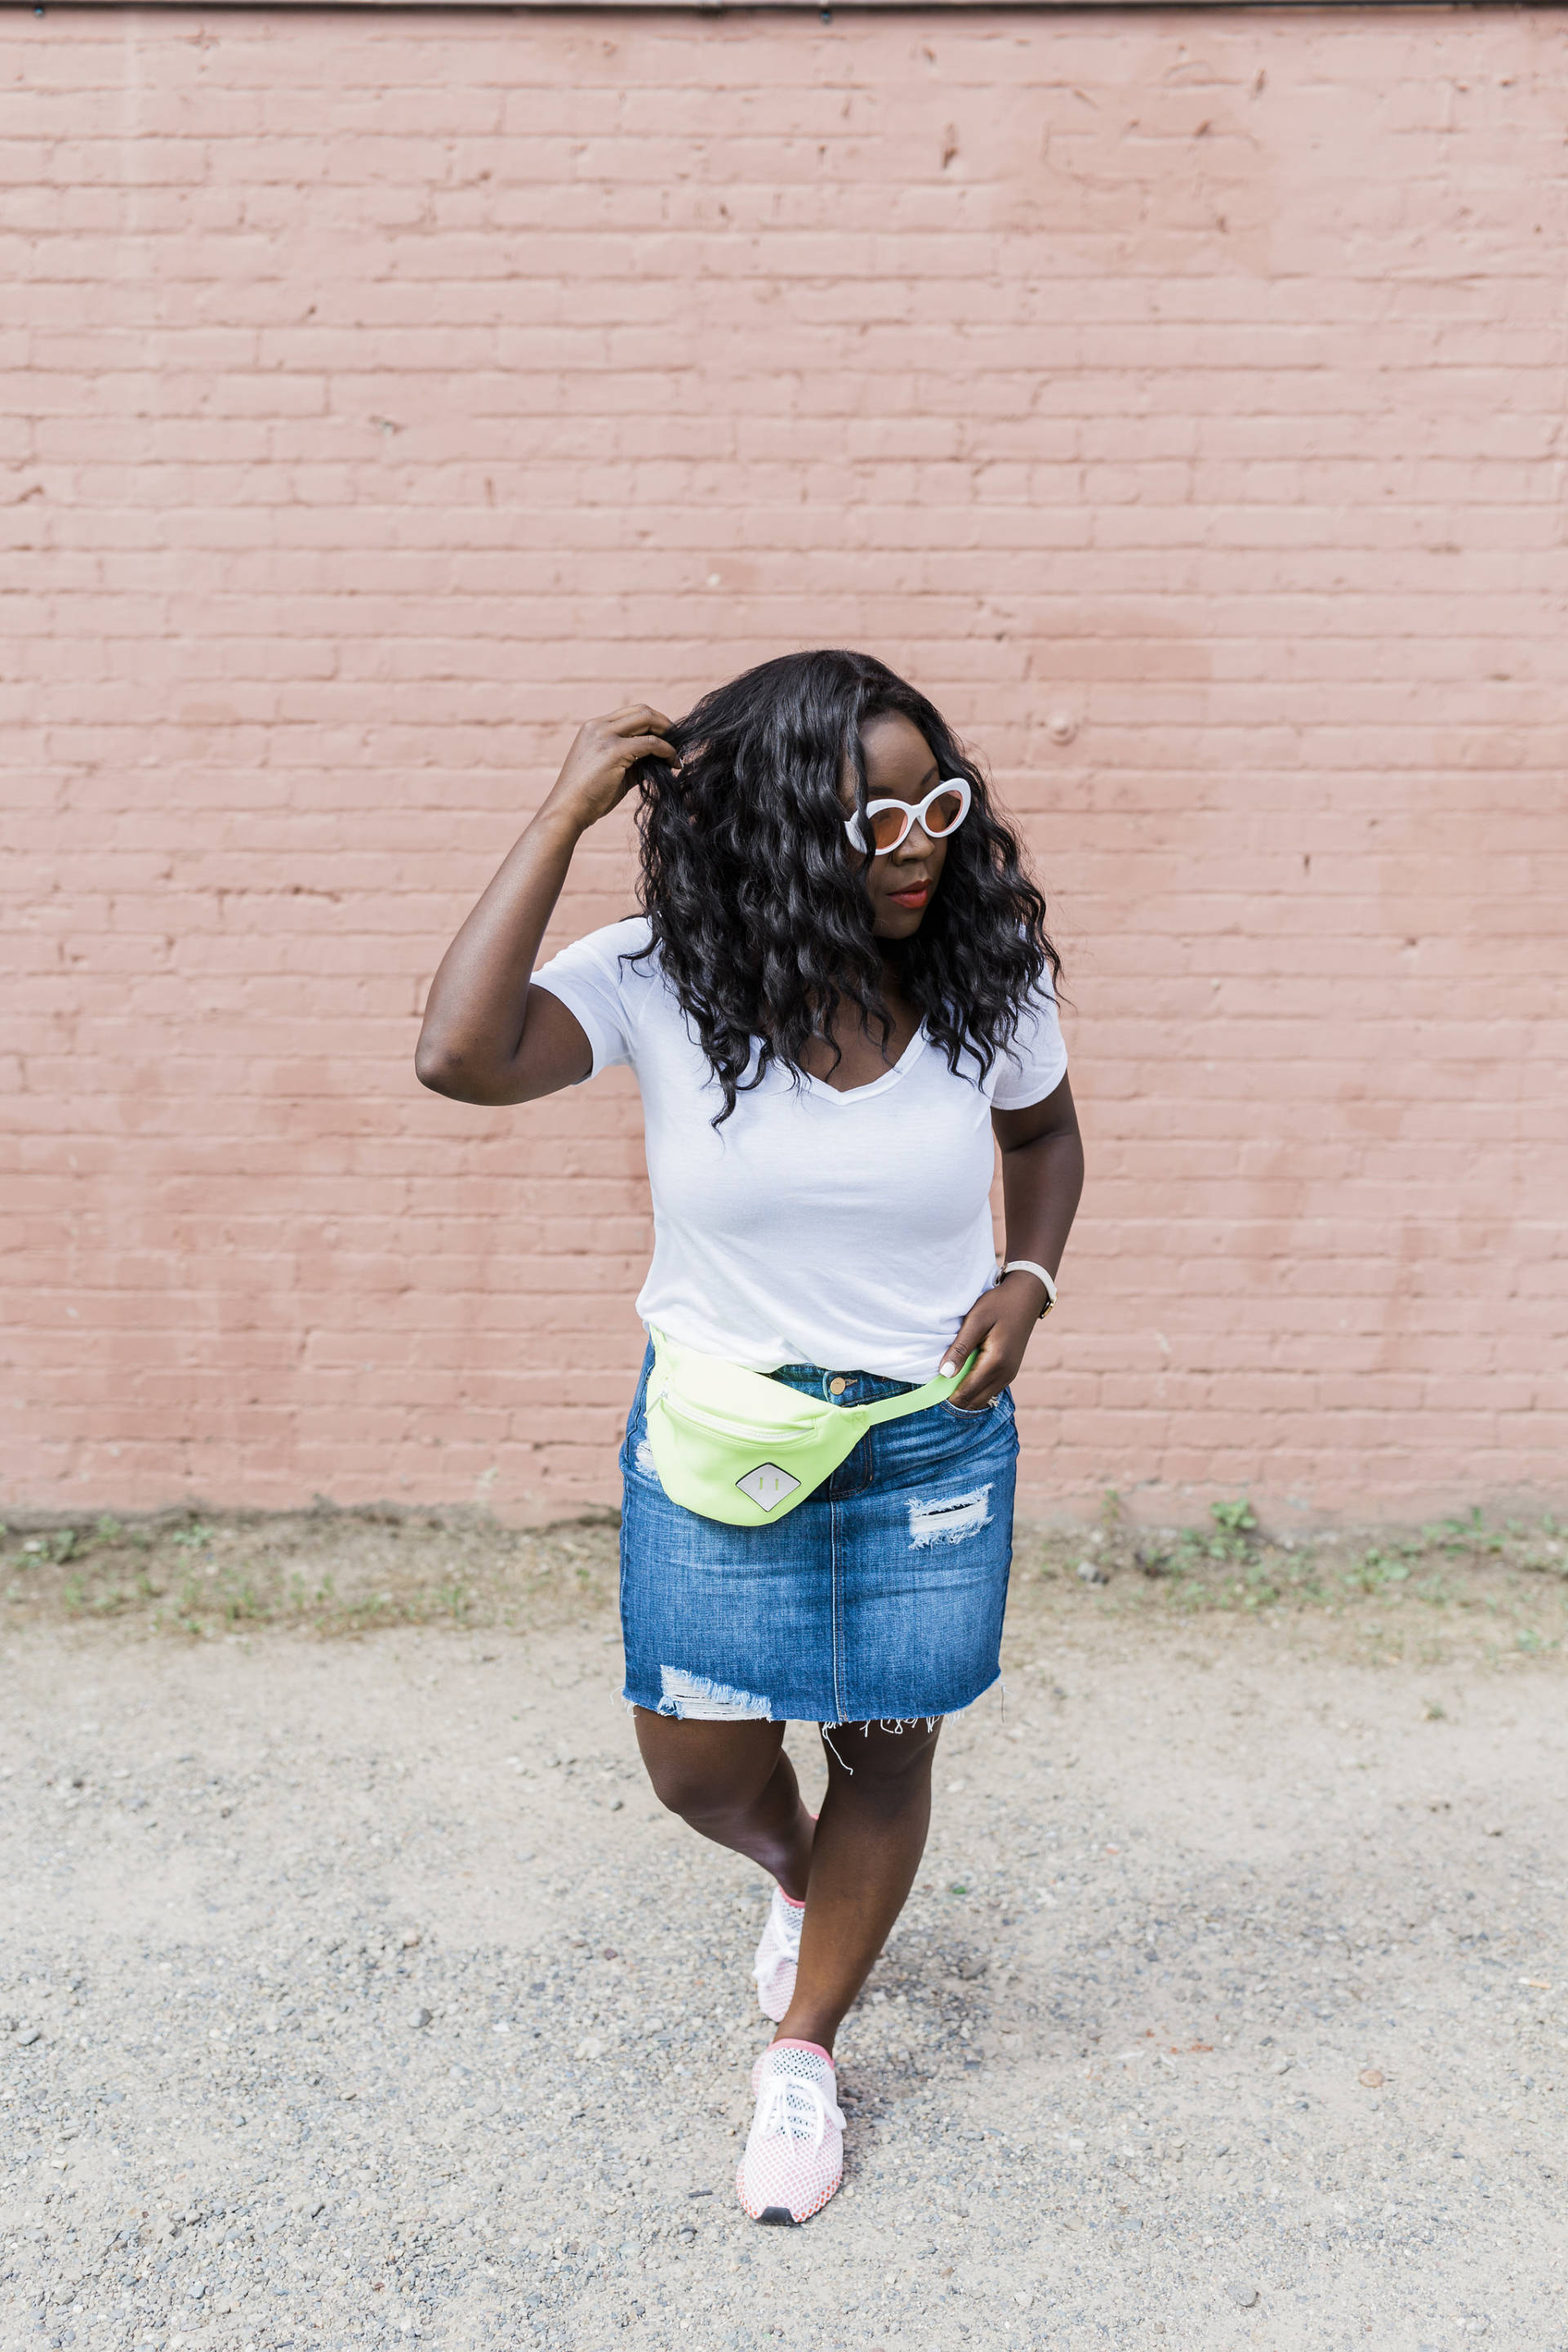 Statement Sneakers + My Summer Bucket List: I love the idea of styling sneakers with something girly like a skirt! This is the perfect look for attacking that Summer bucket list in style and with comfort!